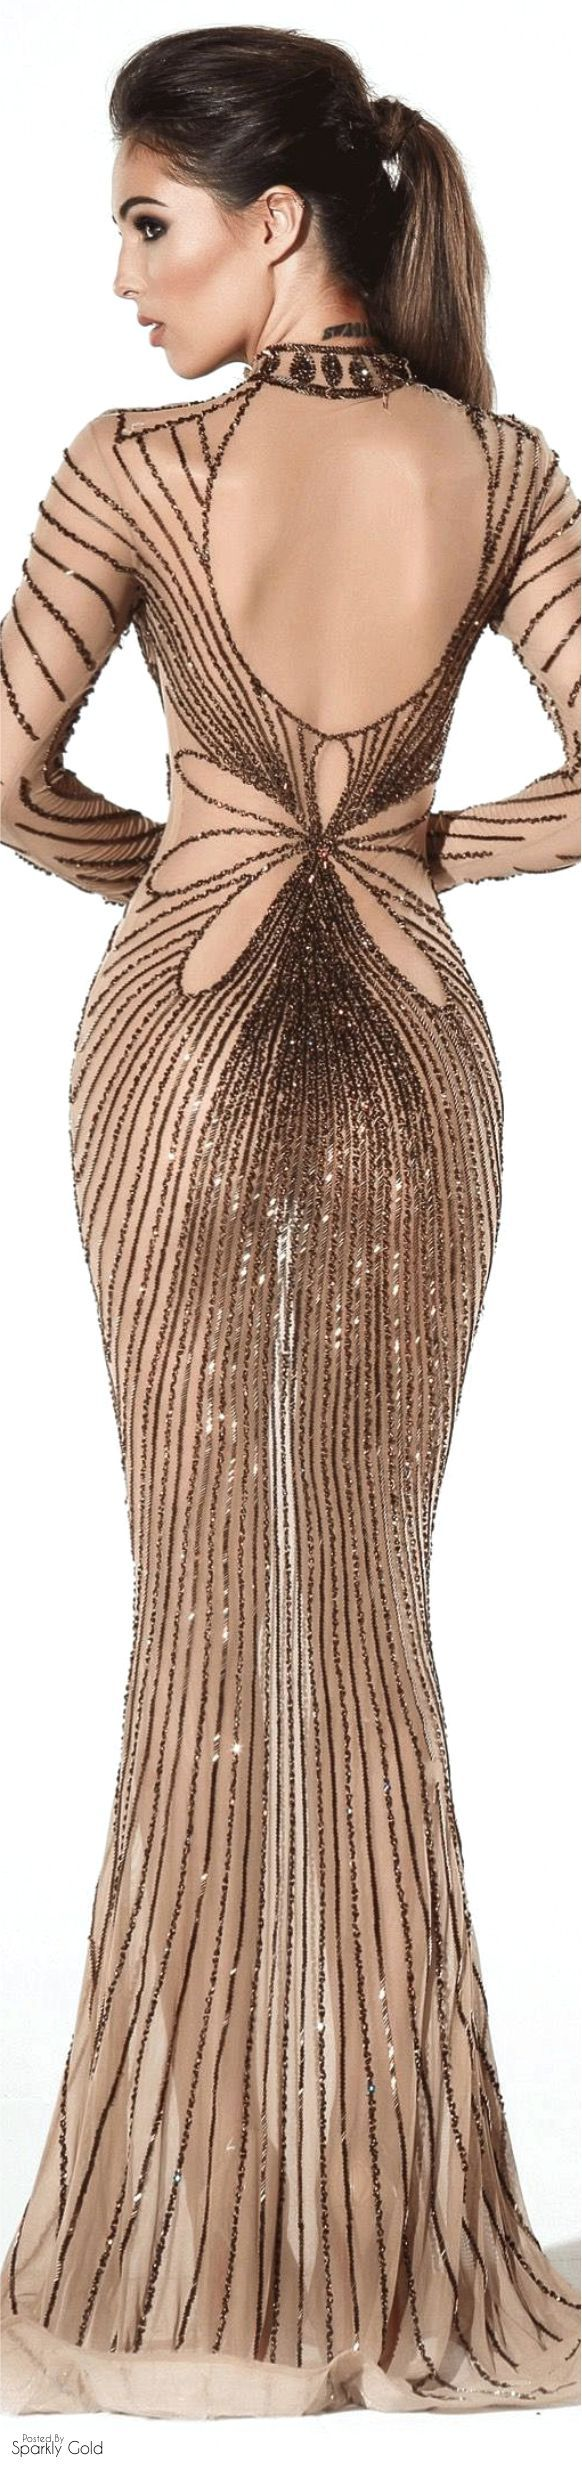 Charbel Zoé Spring 2016 Couture – Hats for lady